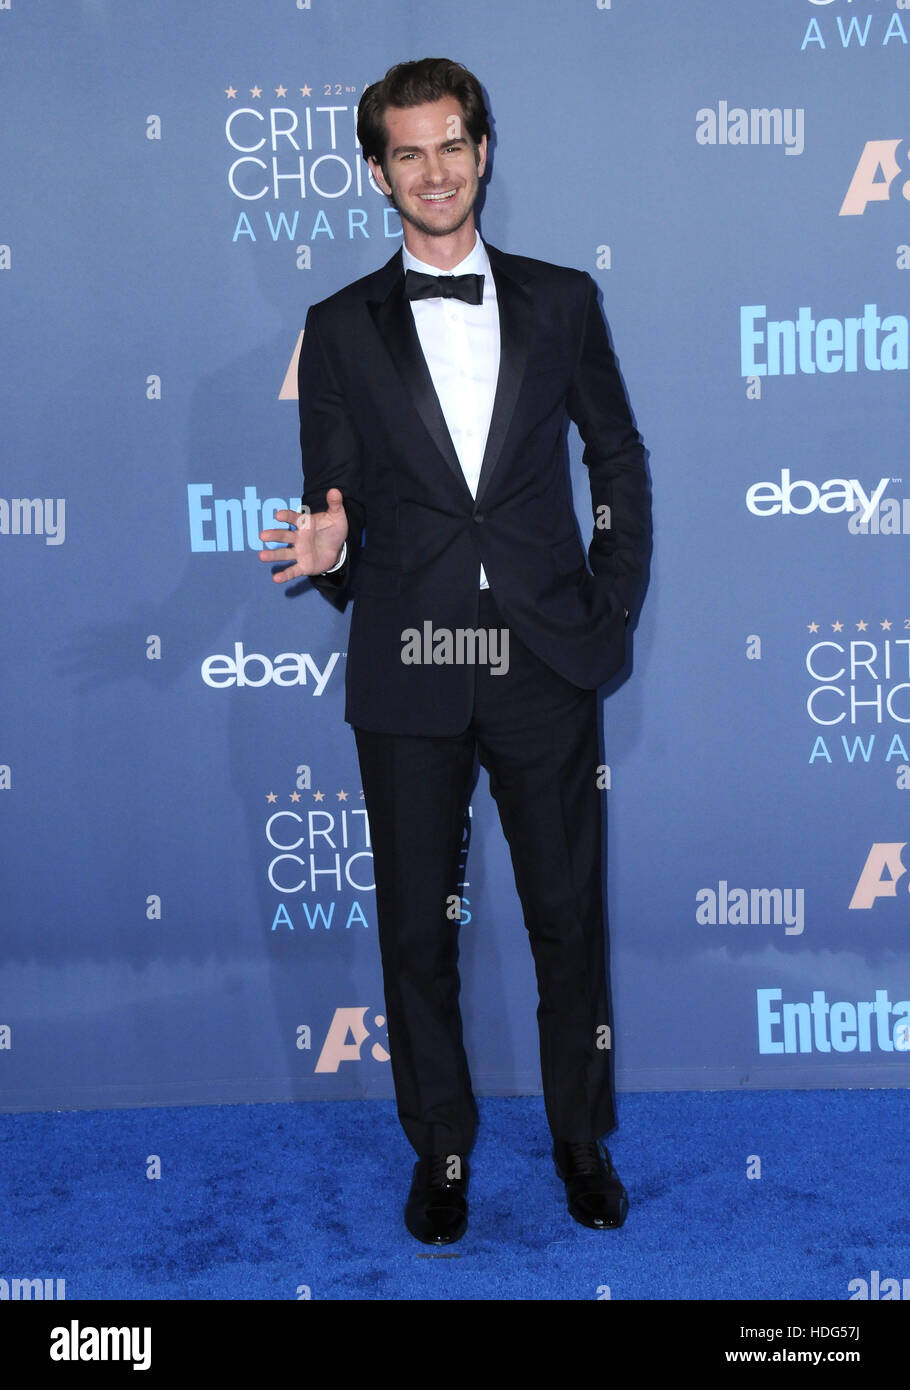 Santa Monica, California, USA. 11 dic, 2016. Andrew Garfield. La 22ª Anual de Critics' Choice Awards celebrado Imagen De Stock